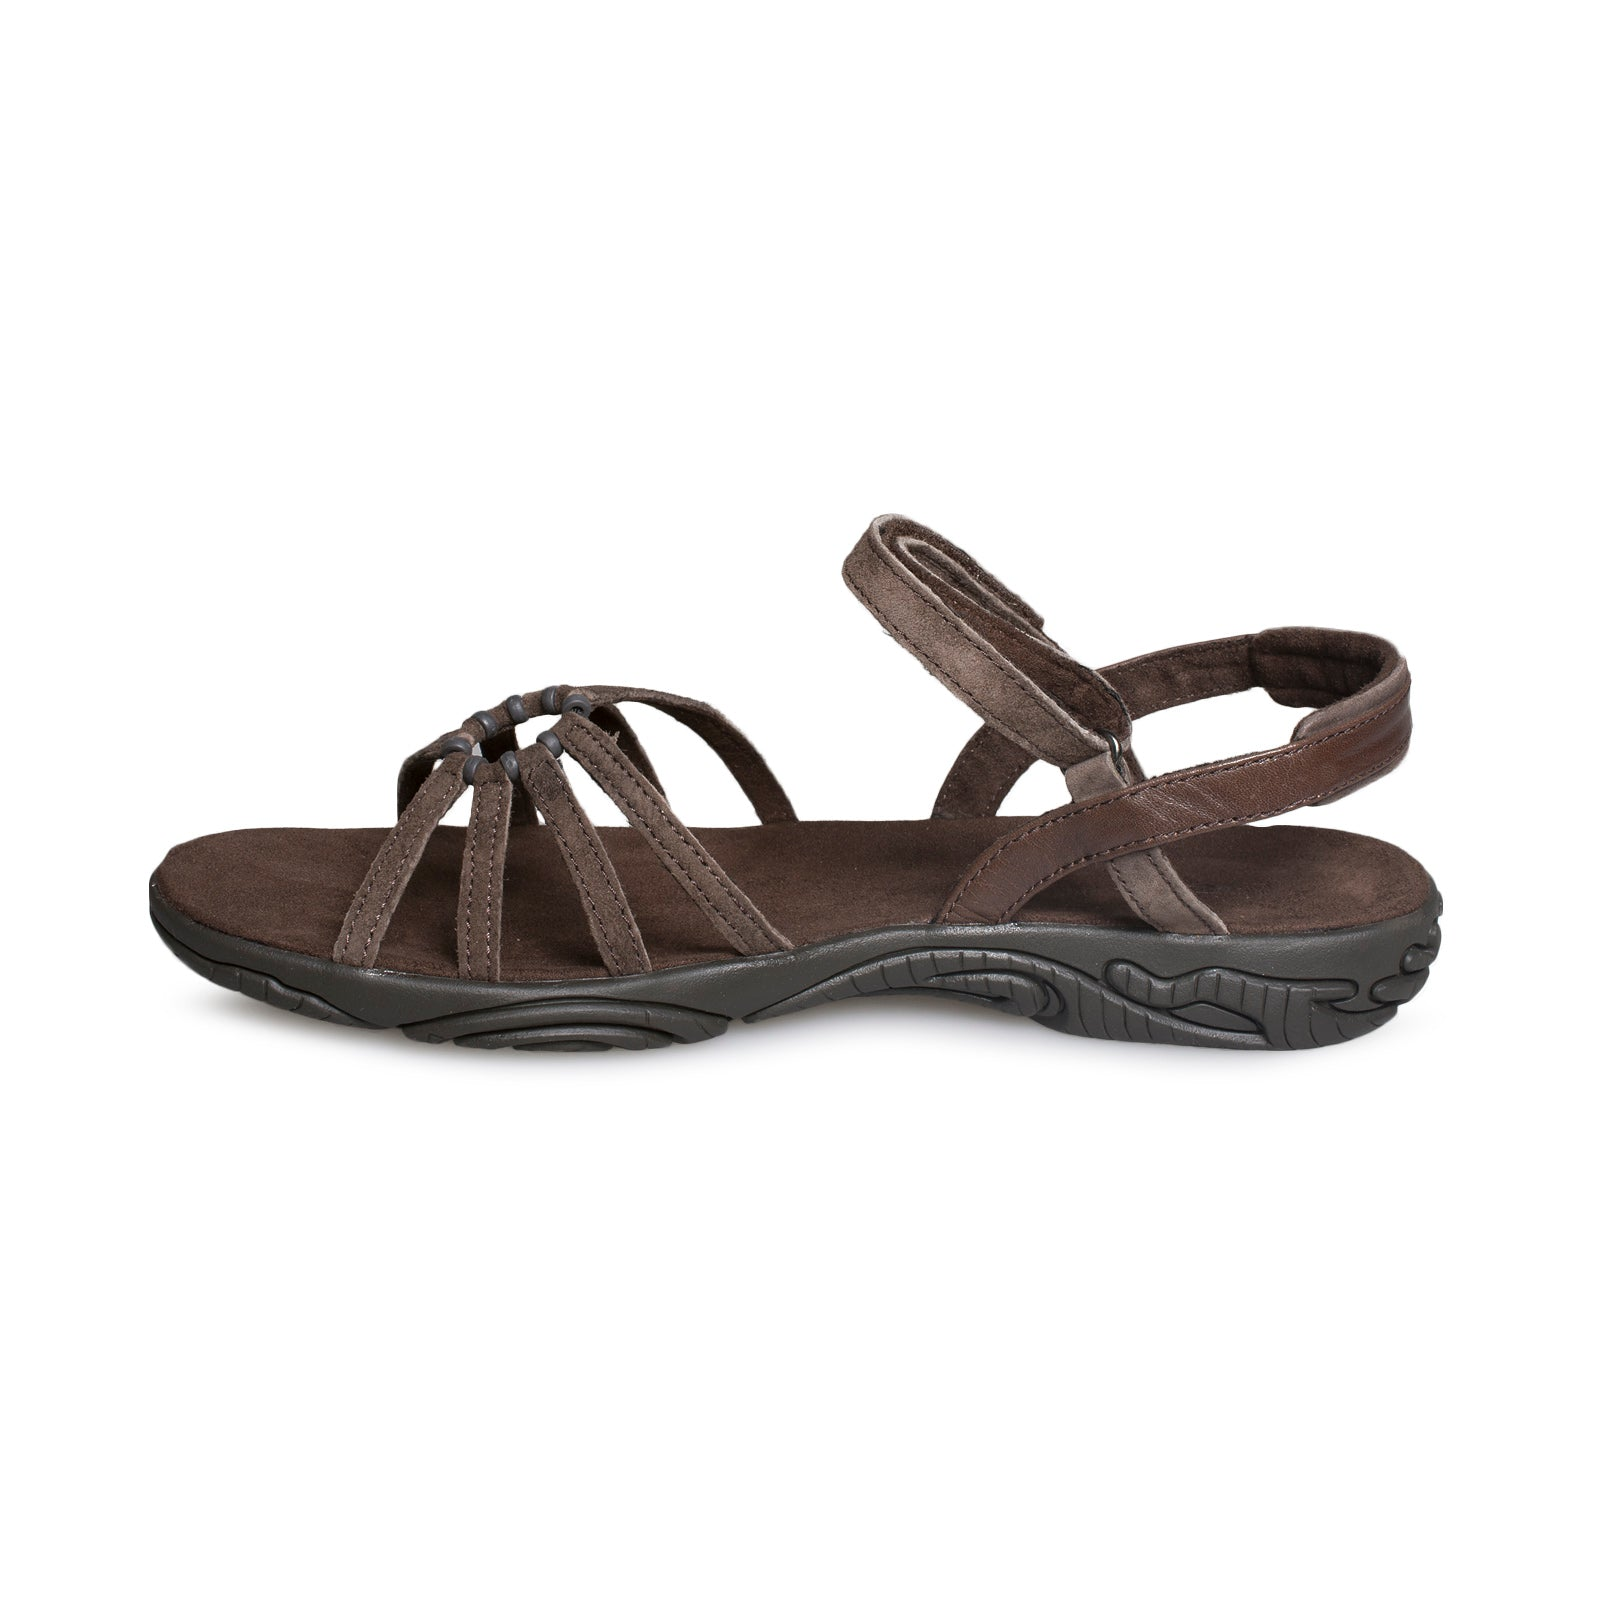 a5f8a629bb6e TEVA Kayenta Suede Brown Sandals - Women s - MyCozyBoots